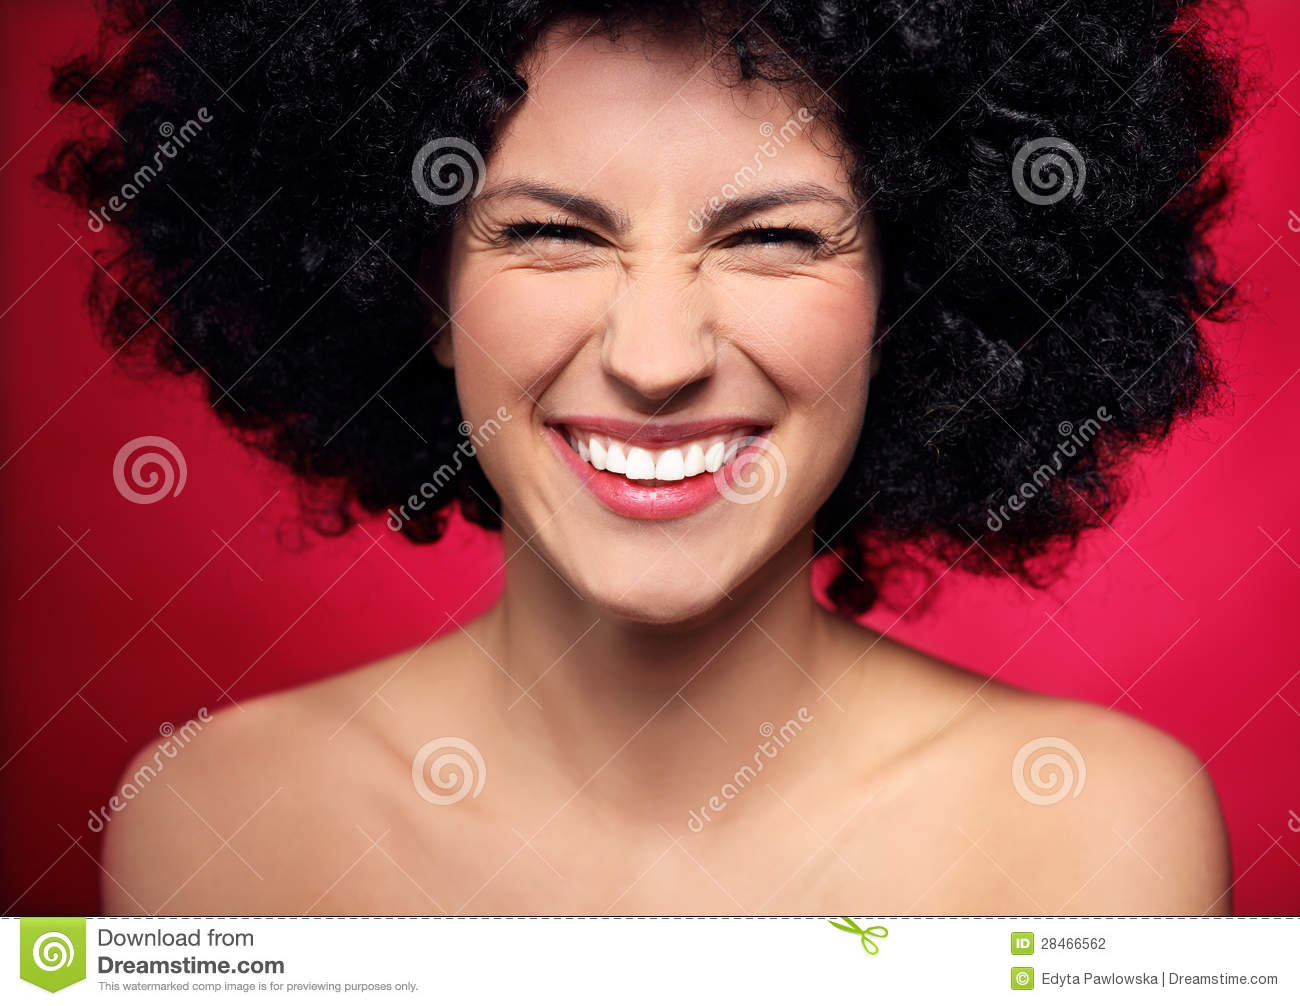 Woman With Black Afro Hairstyle Smiling Stock Photography - Image ...